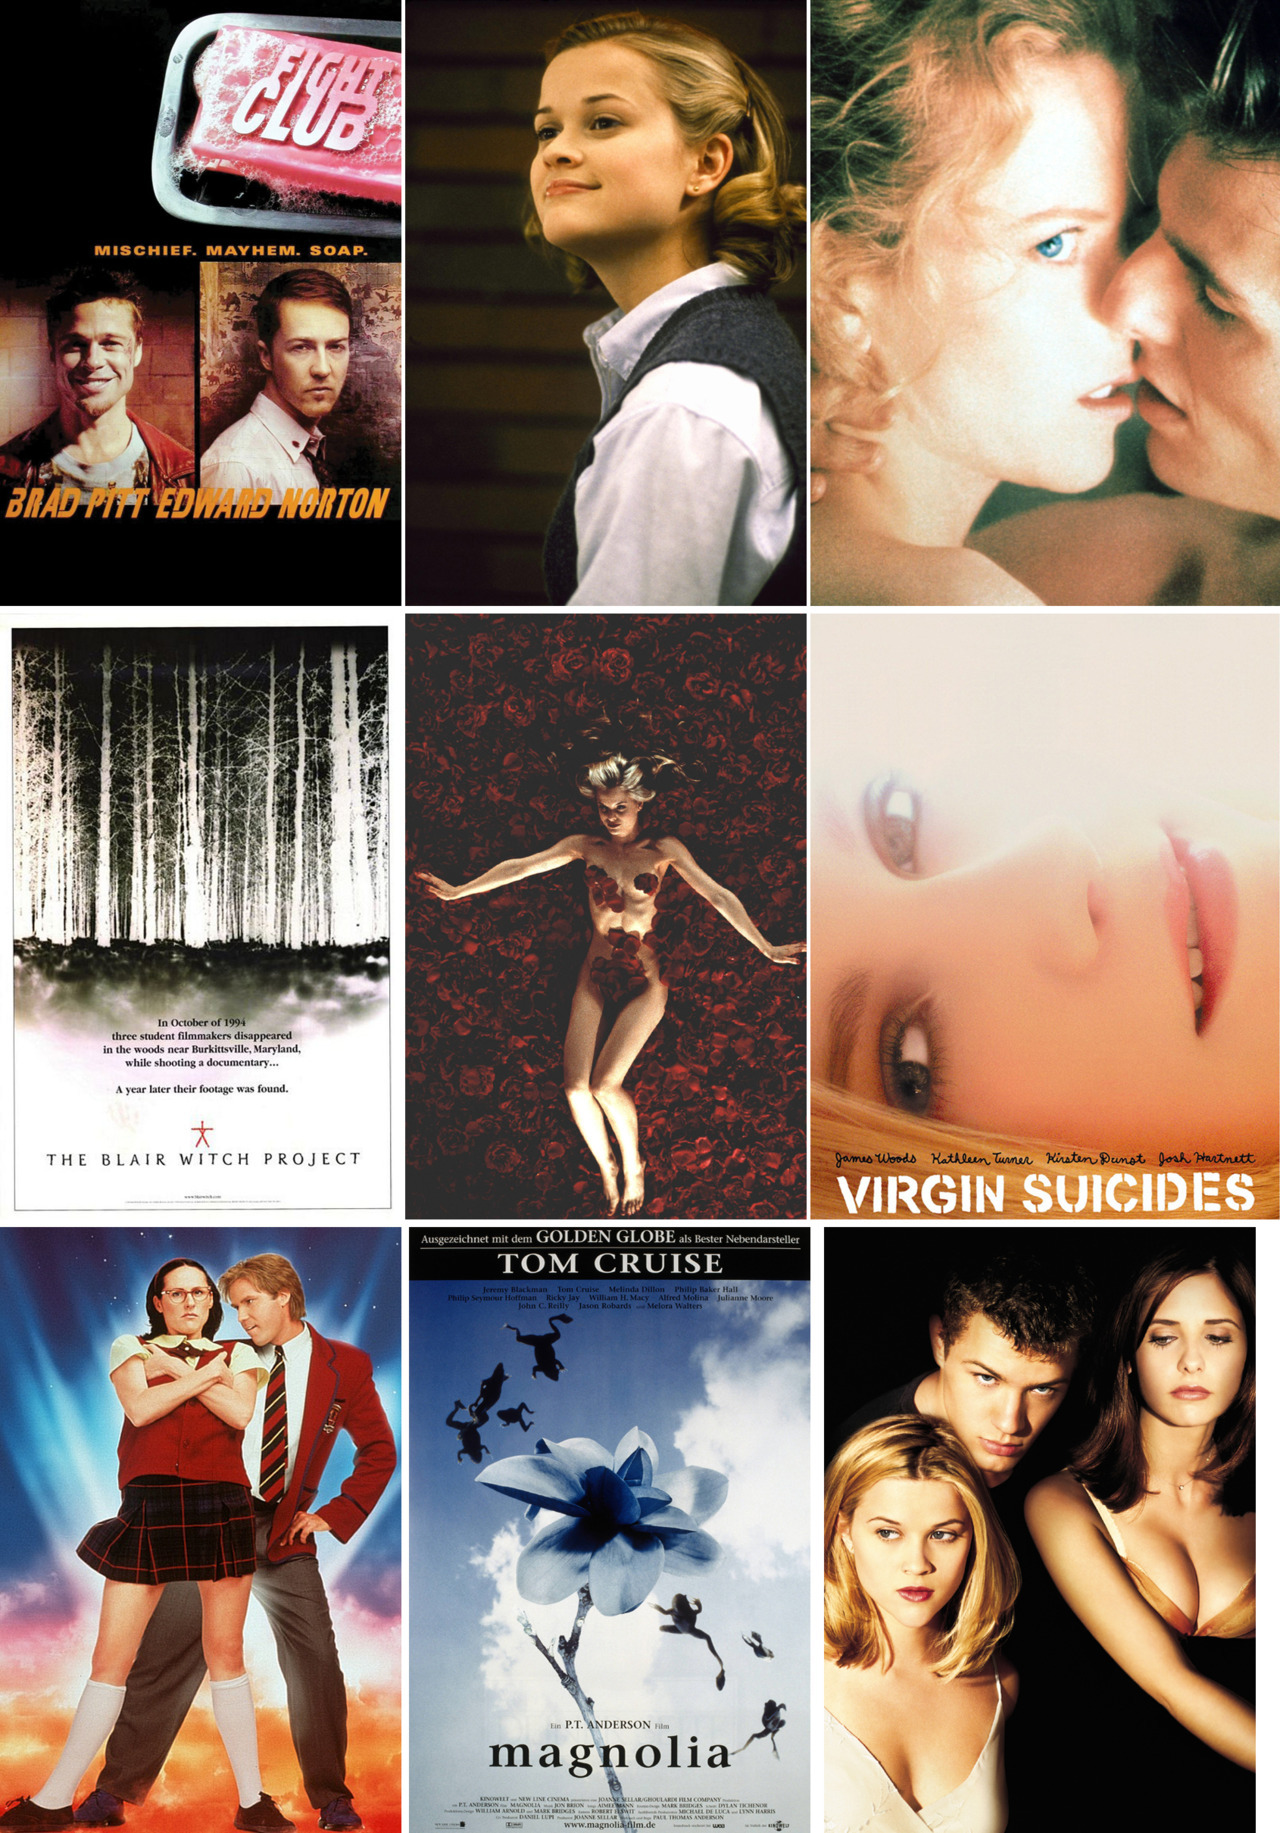 Favourite Movies Released in 1999 Inspired by NatashaVC's list of Personal Favourite Movies Released in 1999, SB & I made our own list. They are, in alphabetical order:  1. American Beauty 2. Austin Powers: The Spy Who Shagged Me 3. Boys Don't Cry (Just Bo) / Girl, Interrupted (Just SB) 4. Being John Malkovich 5. The Blair Witch Project 6. But I'm a Cheerleader 7. Cruel Intentions 8. Election 9. Eyes Wide Shut10. Fight Club11. The Green Mile12. Holy Smoke!13. Jawbreaker14. Magnolia15. Office Space16. Sleepy Hollow17. South Park: Bigger, Longer & Uncut18. Superstar19. The Talented Mr. Ripley20. The Virgin Suicides Honourable Mentions: 8MM (JOAQUIN IN BELLY SHIRTS! One of Bo's favourite Cagey hits!)10 Things I Hate About You (Heath! Julia Styles' hair! That two piece prom gown!)Dick (KiKi + Michelle Williams = Bliss!)Drop Dead Gorgeous (Kirsten Dunst invasion year!)Entrapment (Best use of of a badonk in the history of badonks!)Go (Introduced us to Olyphant!) What are your favourite movies released in 1999? *Edited because we forgot to put The Green Mile on our list & because I forgot to say What are your favourite movies released in 1999?